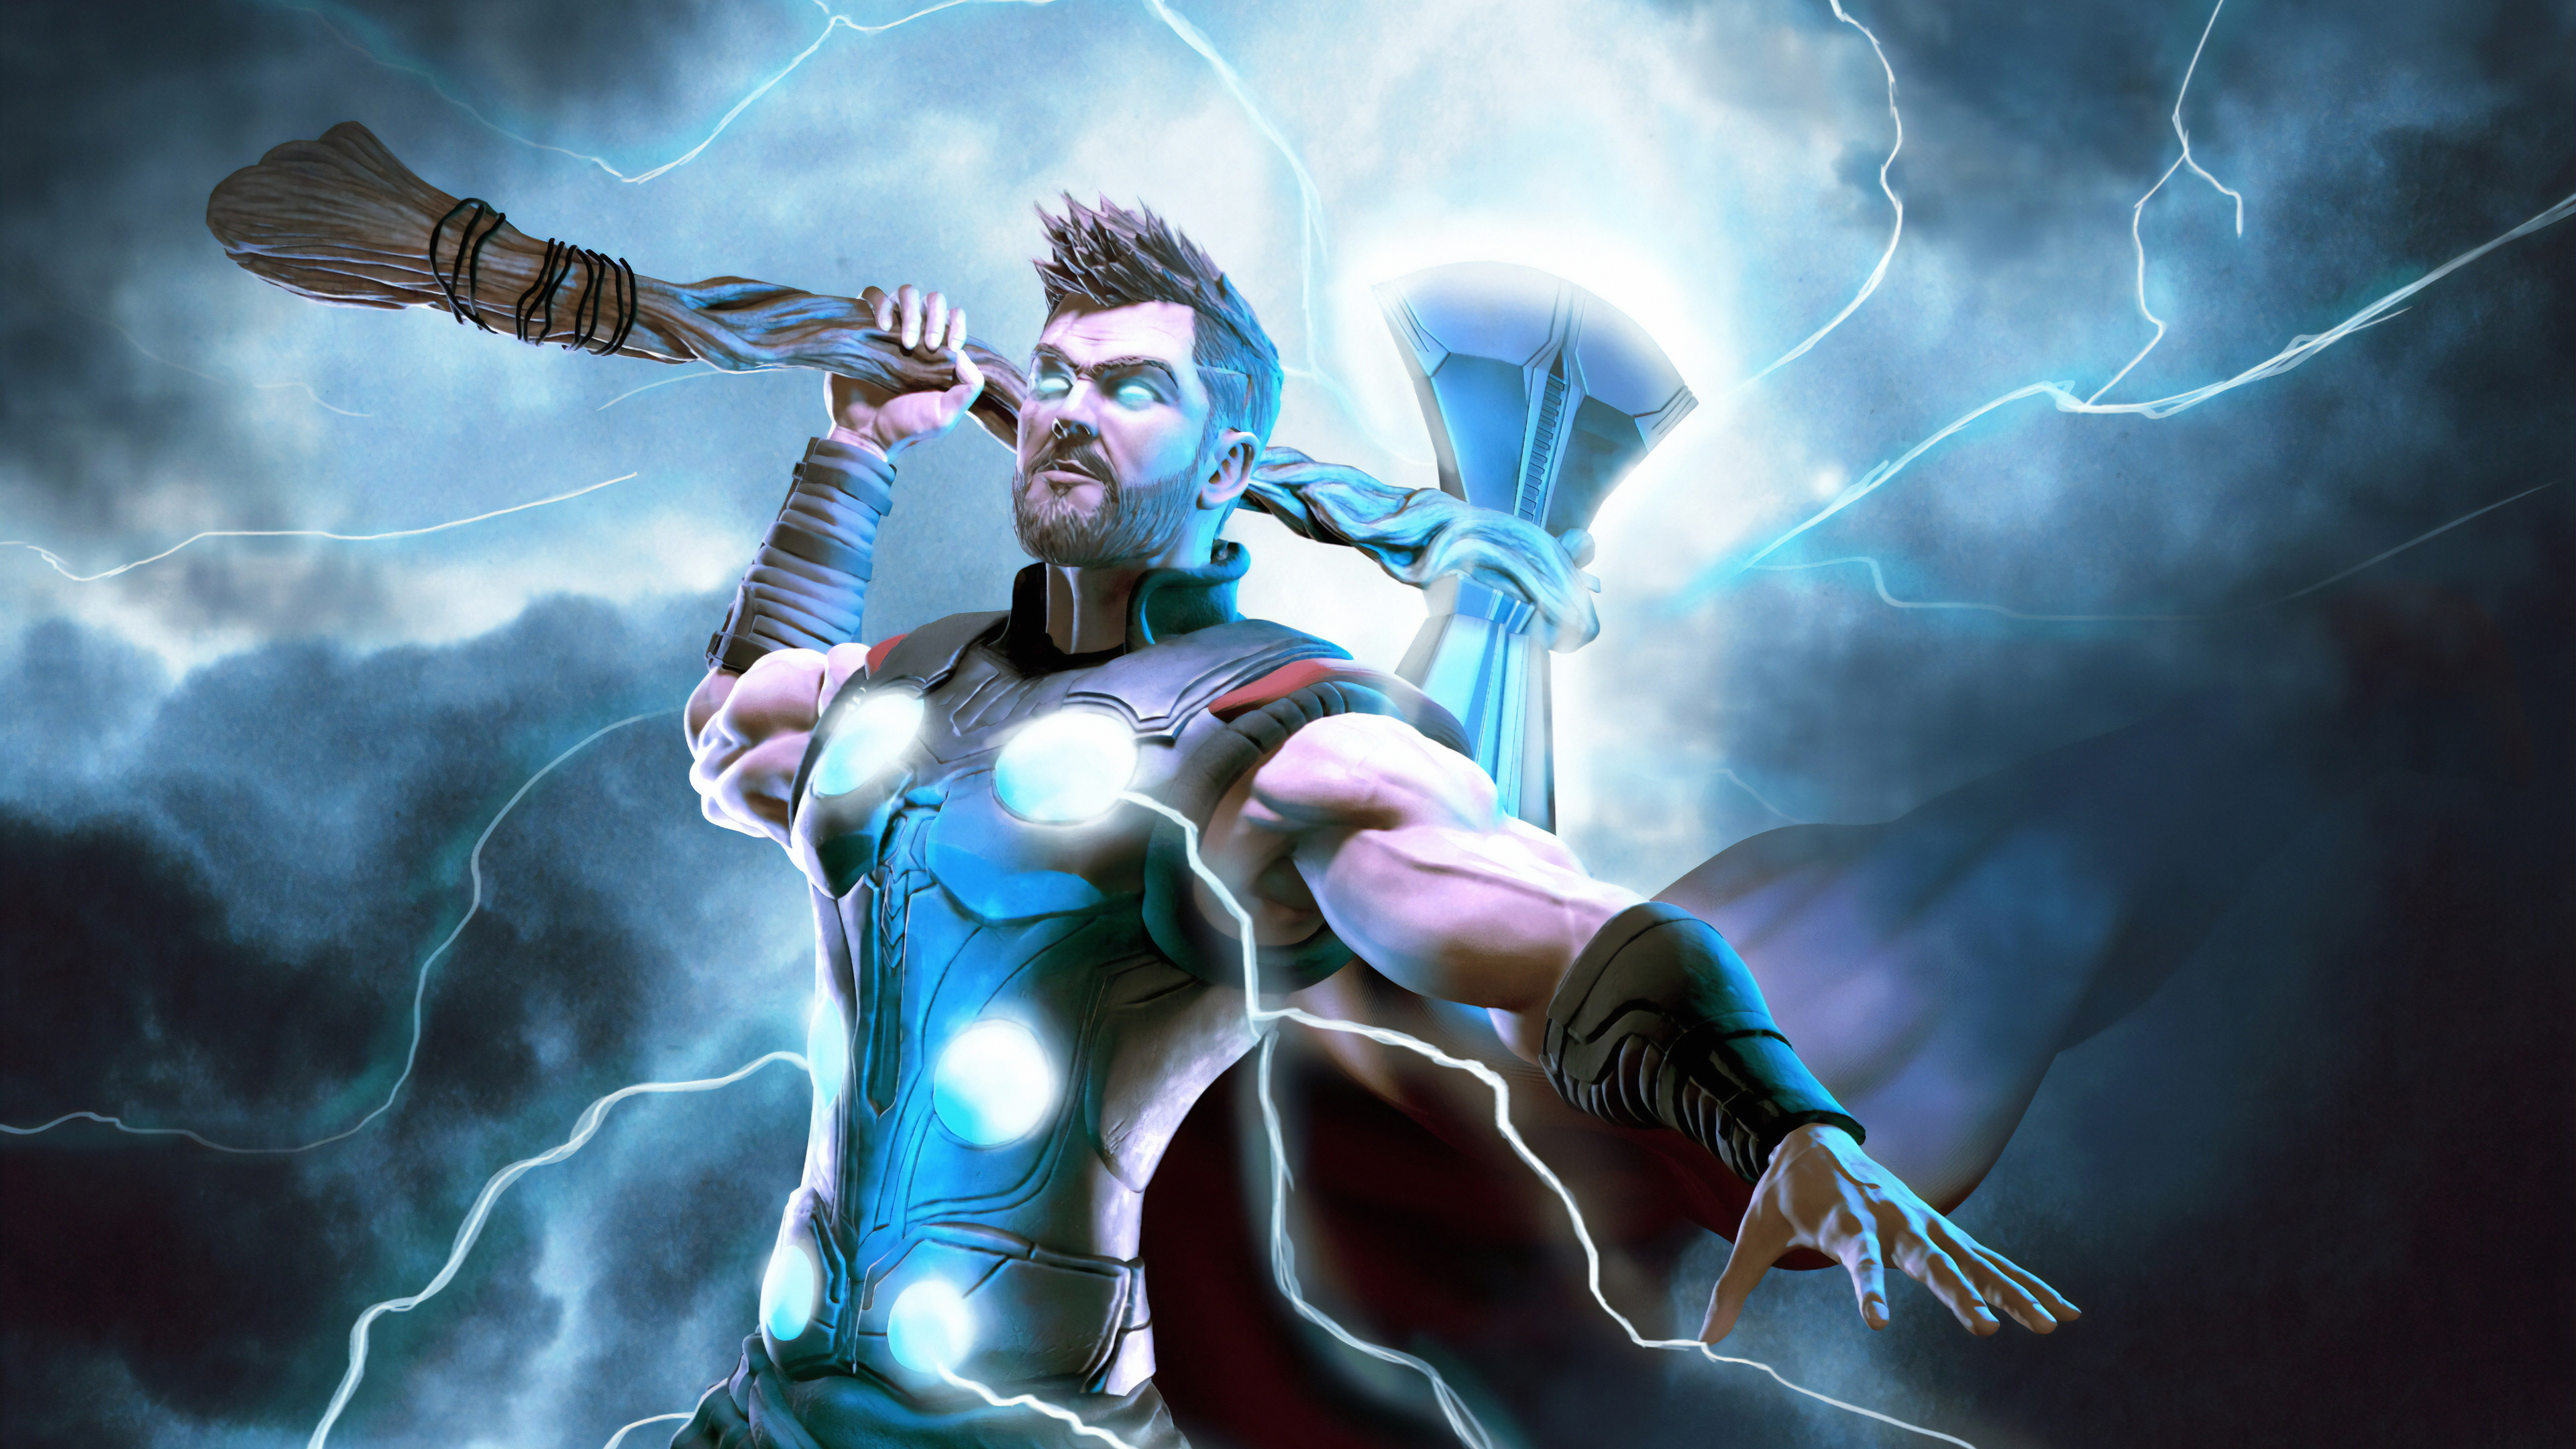 Thor Hd Wallpapers For Pc 3840x2160 Download Hd Wallpaper Wallpapertip